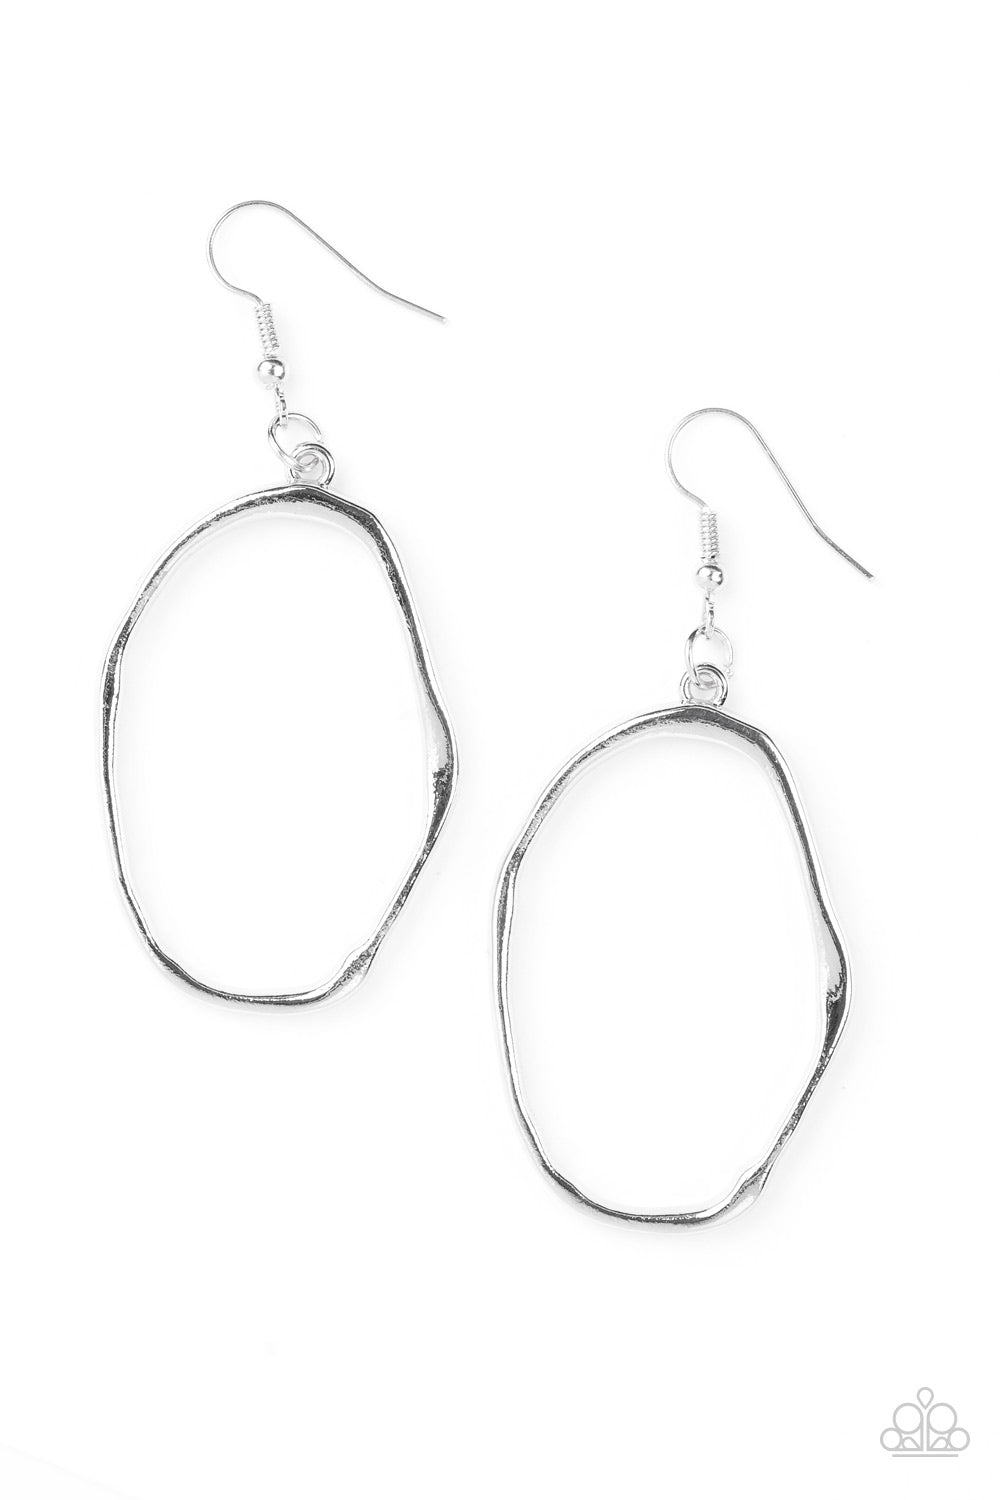 Eco Chic Silver Earring